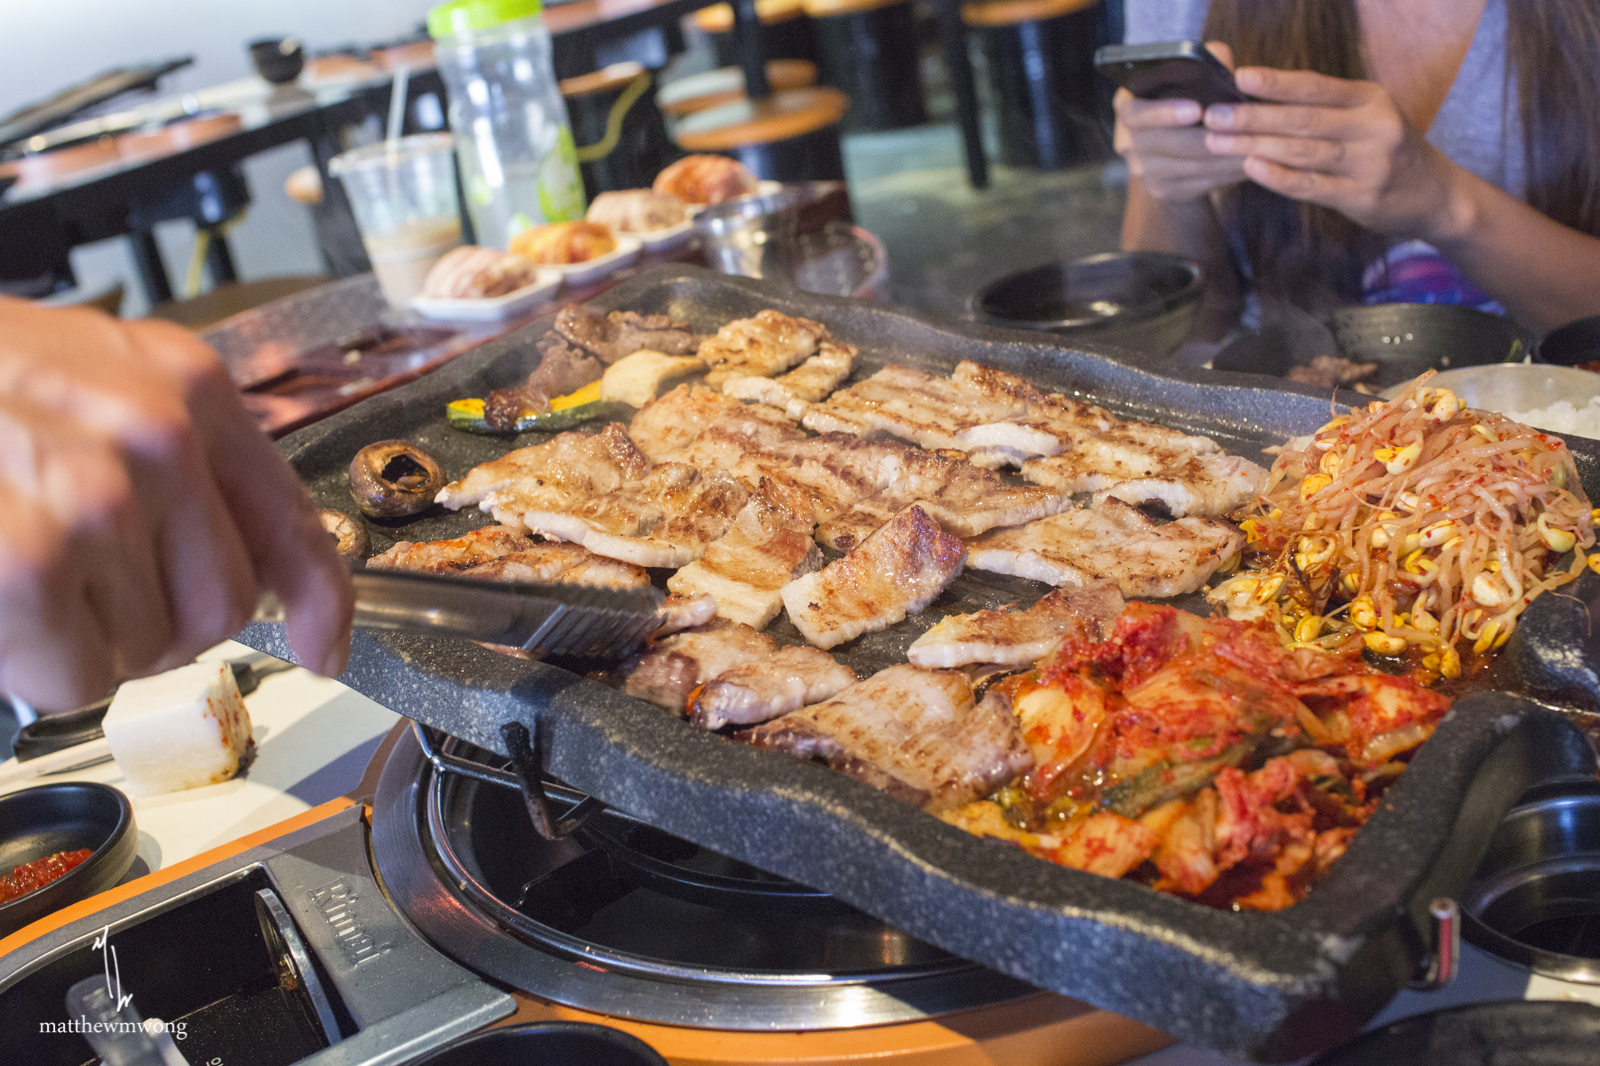 Full service Korean BBQ. Grills, cuts, replenishes your panchan, and fills up your drink quite regularly! Great service.